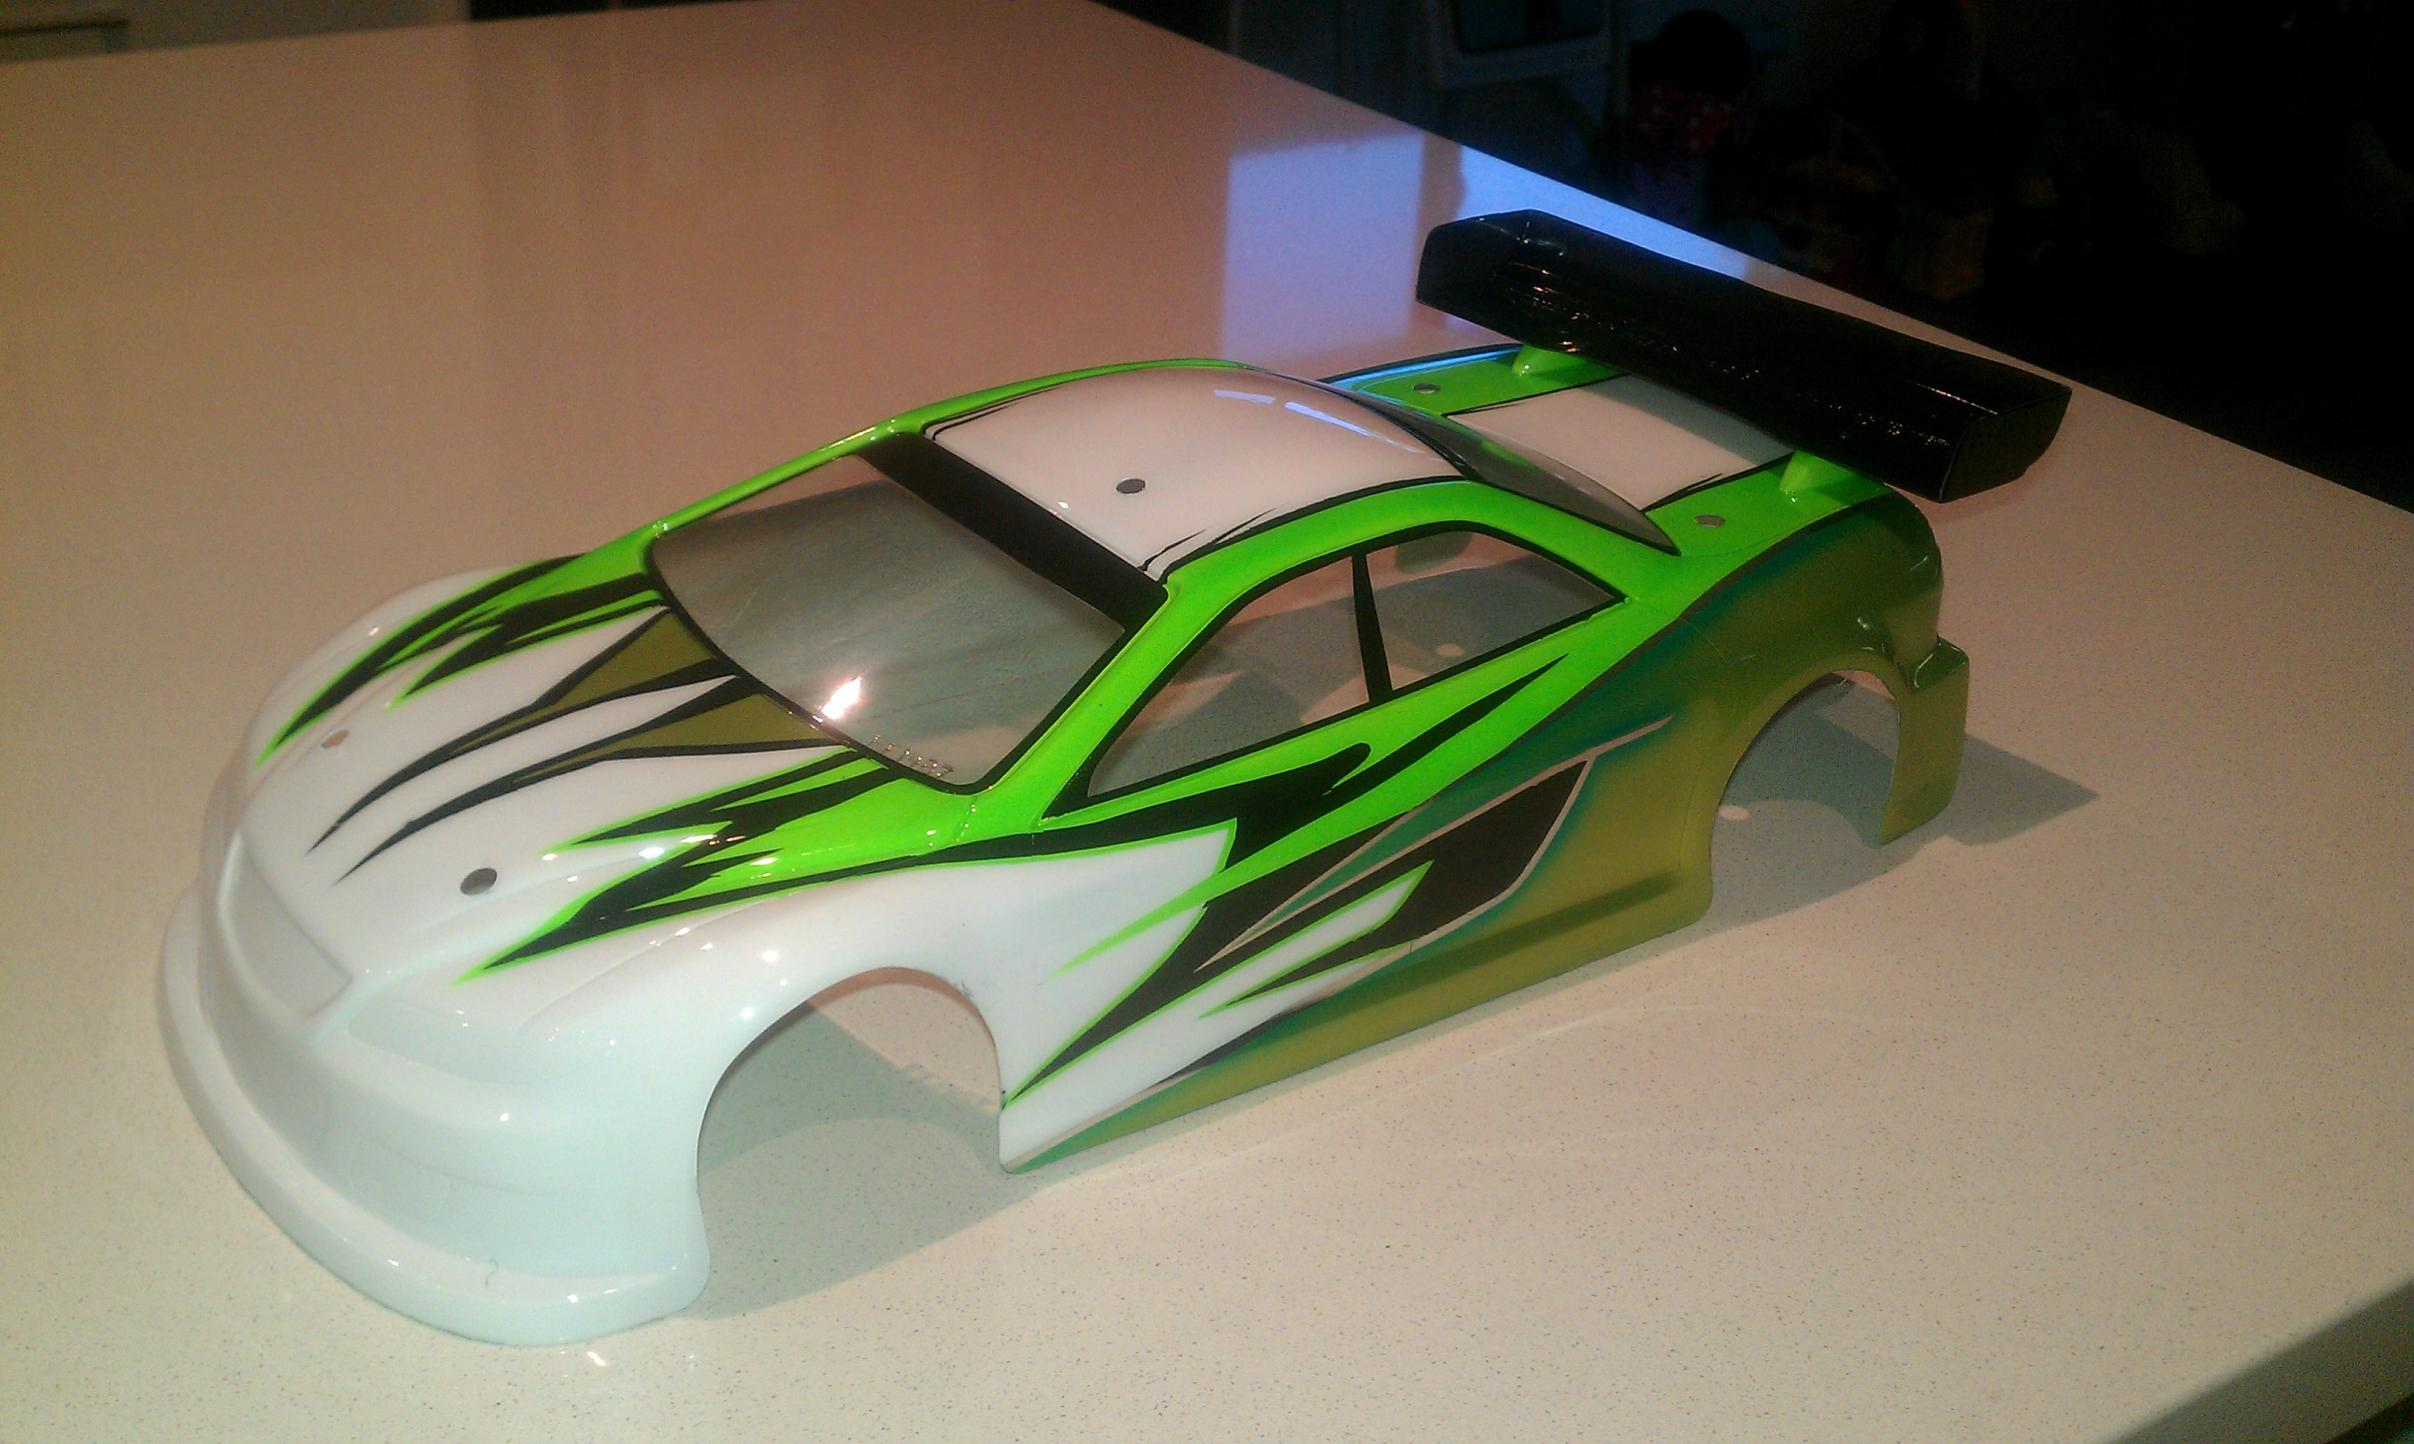 Custom Airbrushed bodies - Made to your design - R/C Tech Forums